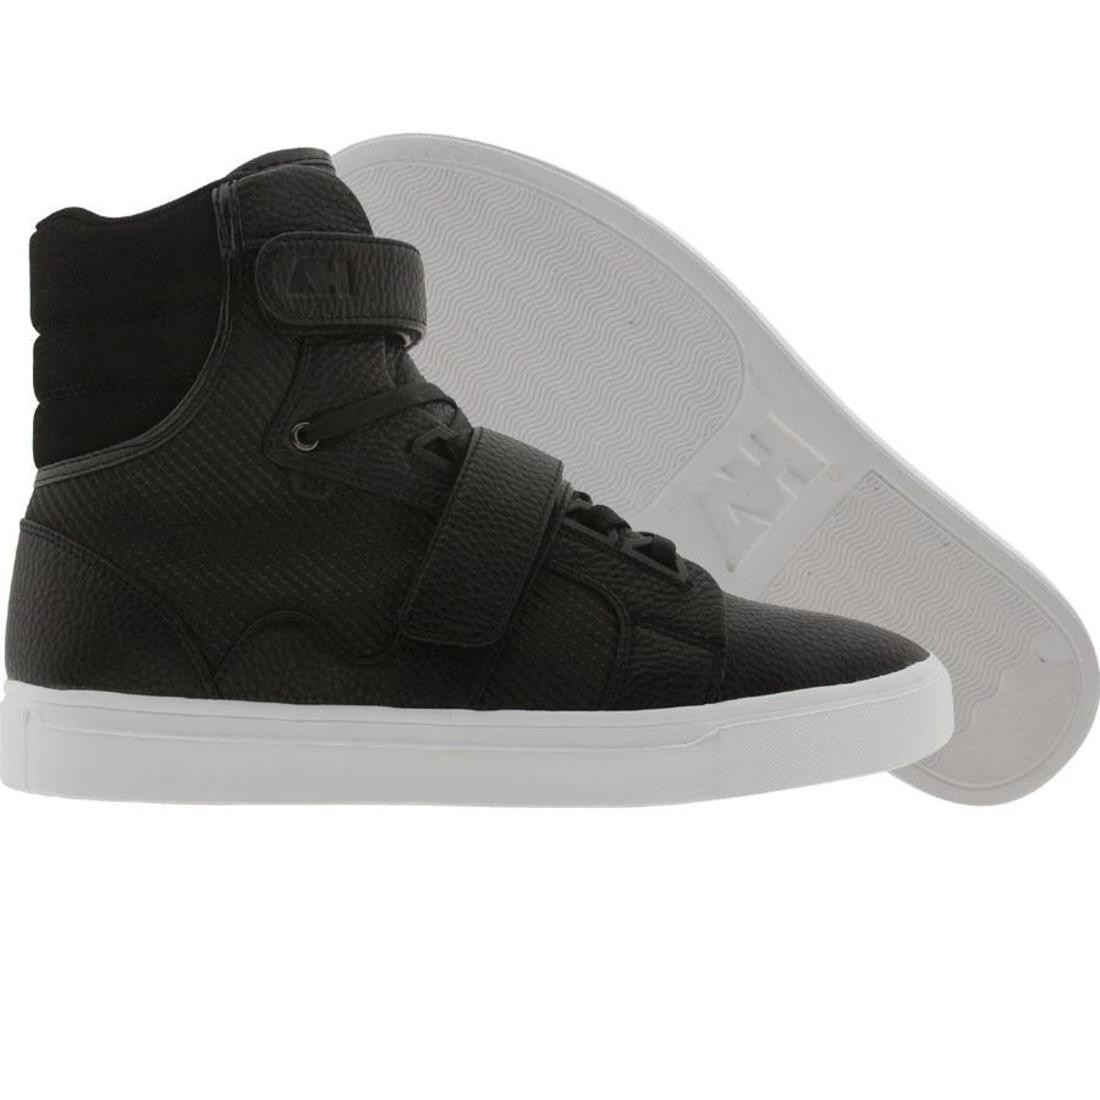 【海外限定】ハイ 靴 スニーカー 【 AH BY ANDROID HOMME PROPULSION HIGH BLACK 】